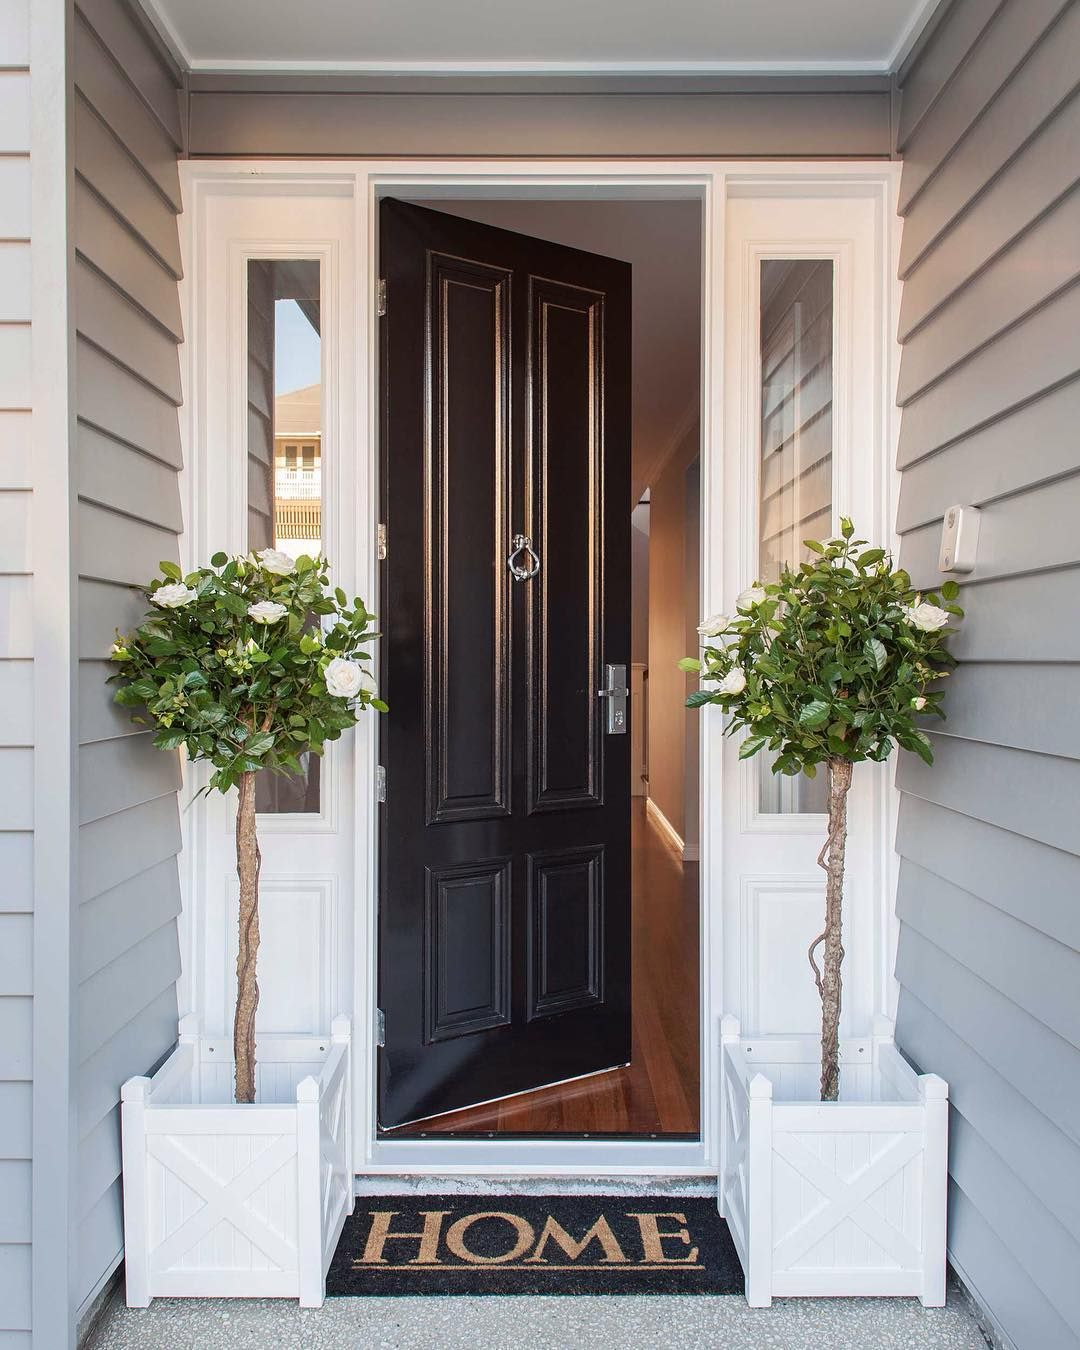 Home Design Ideas Front: Welcome Home To This Classic Hamptons Style Front Entrance